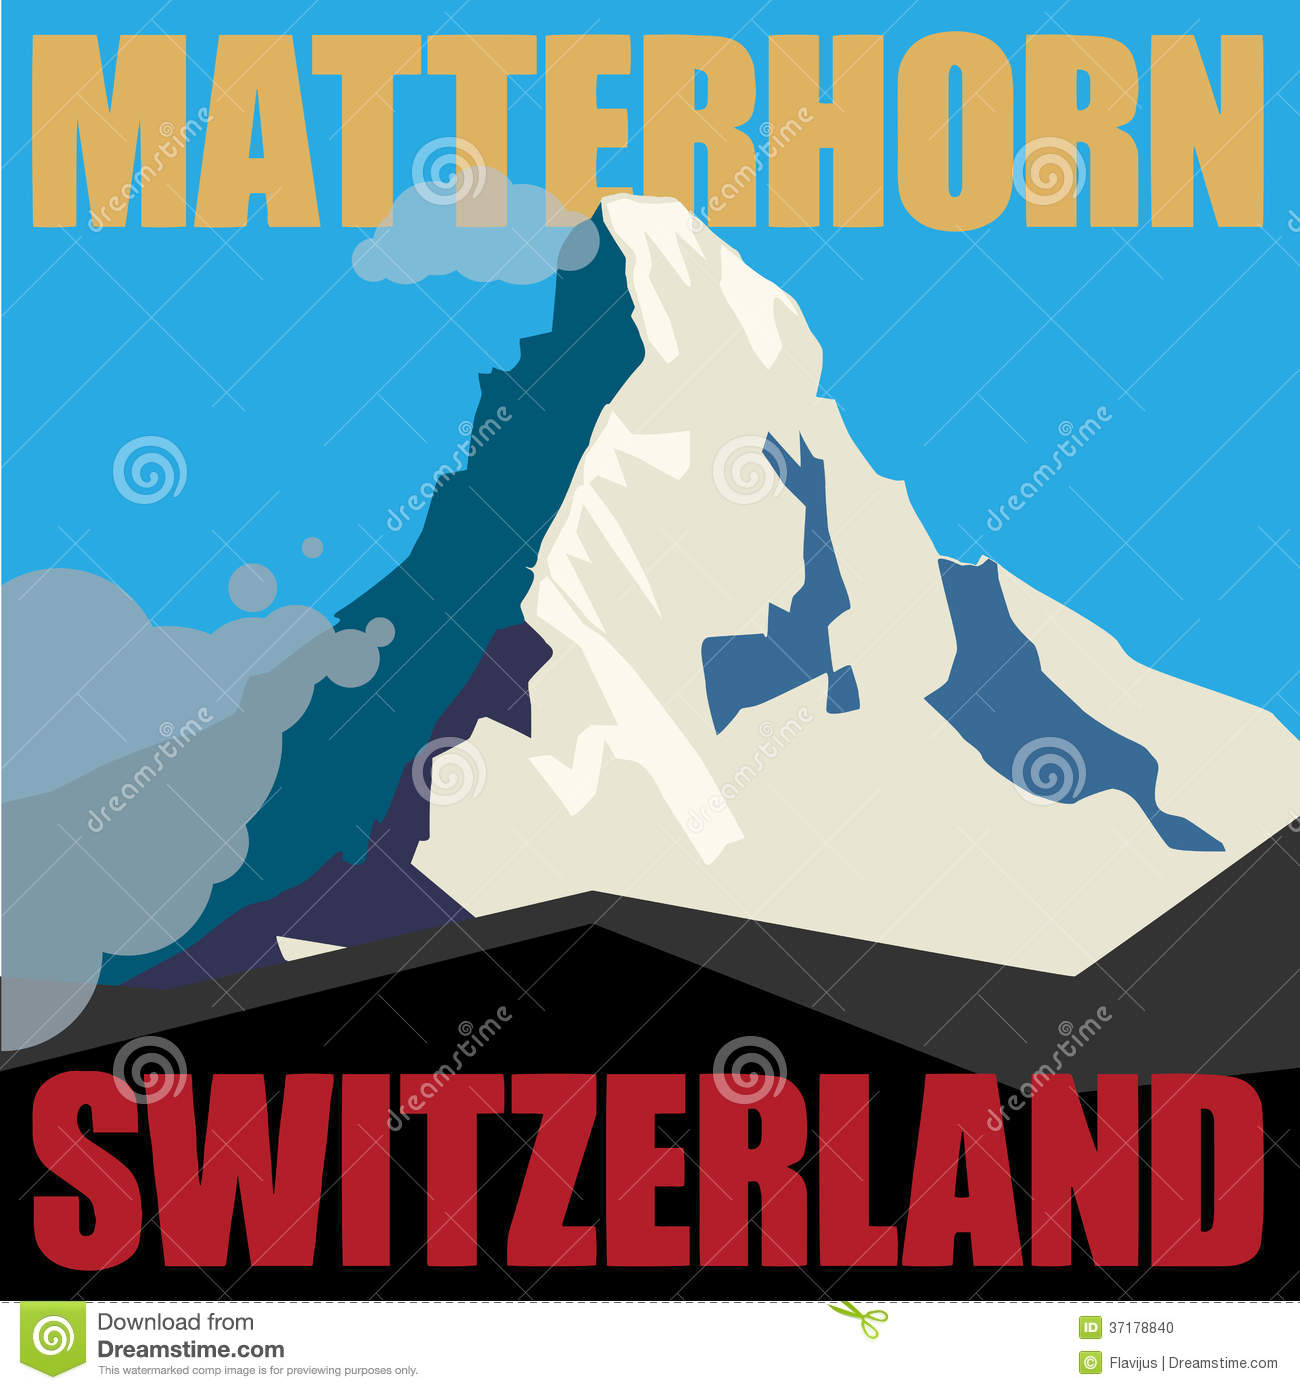 Matterhorn Stock Illustrations.